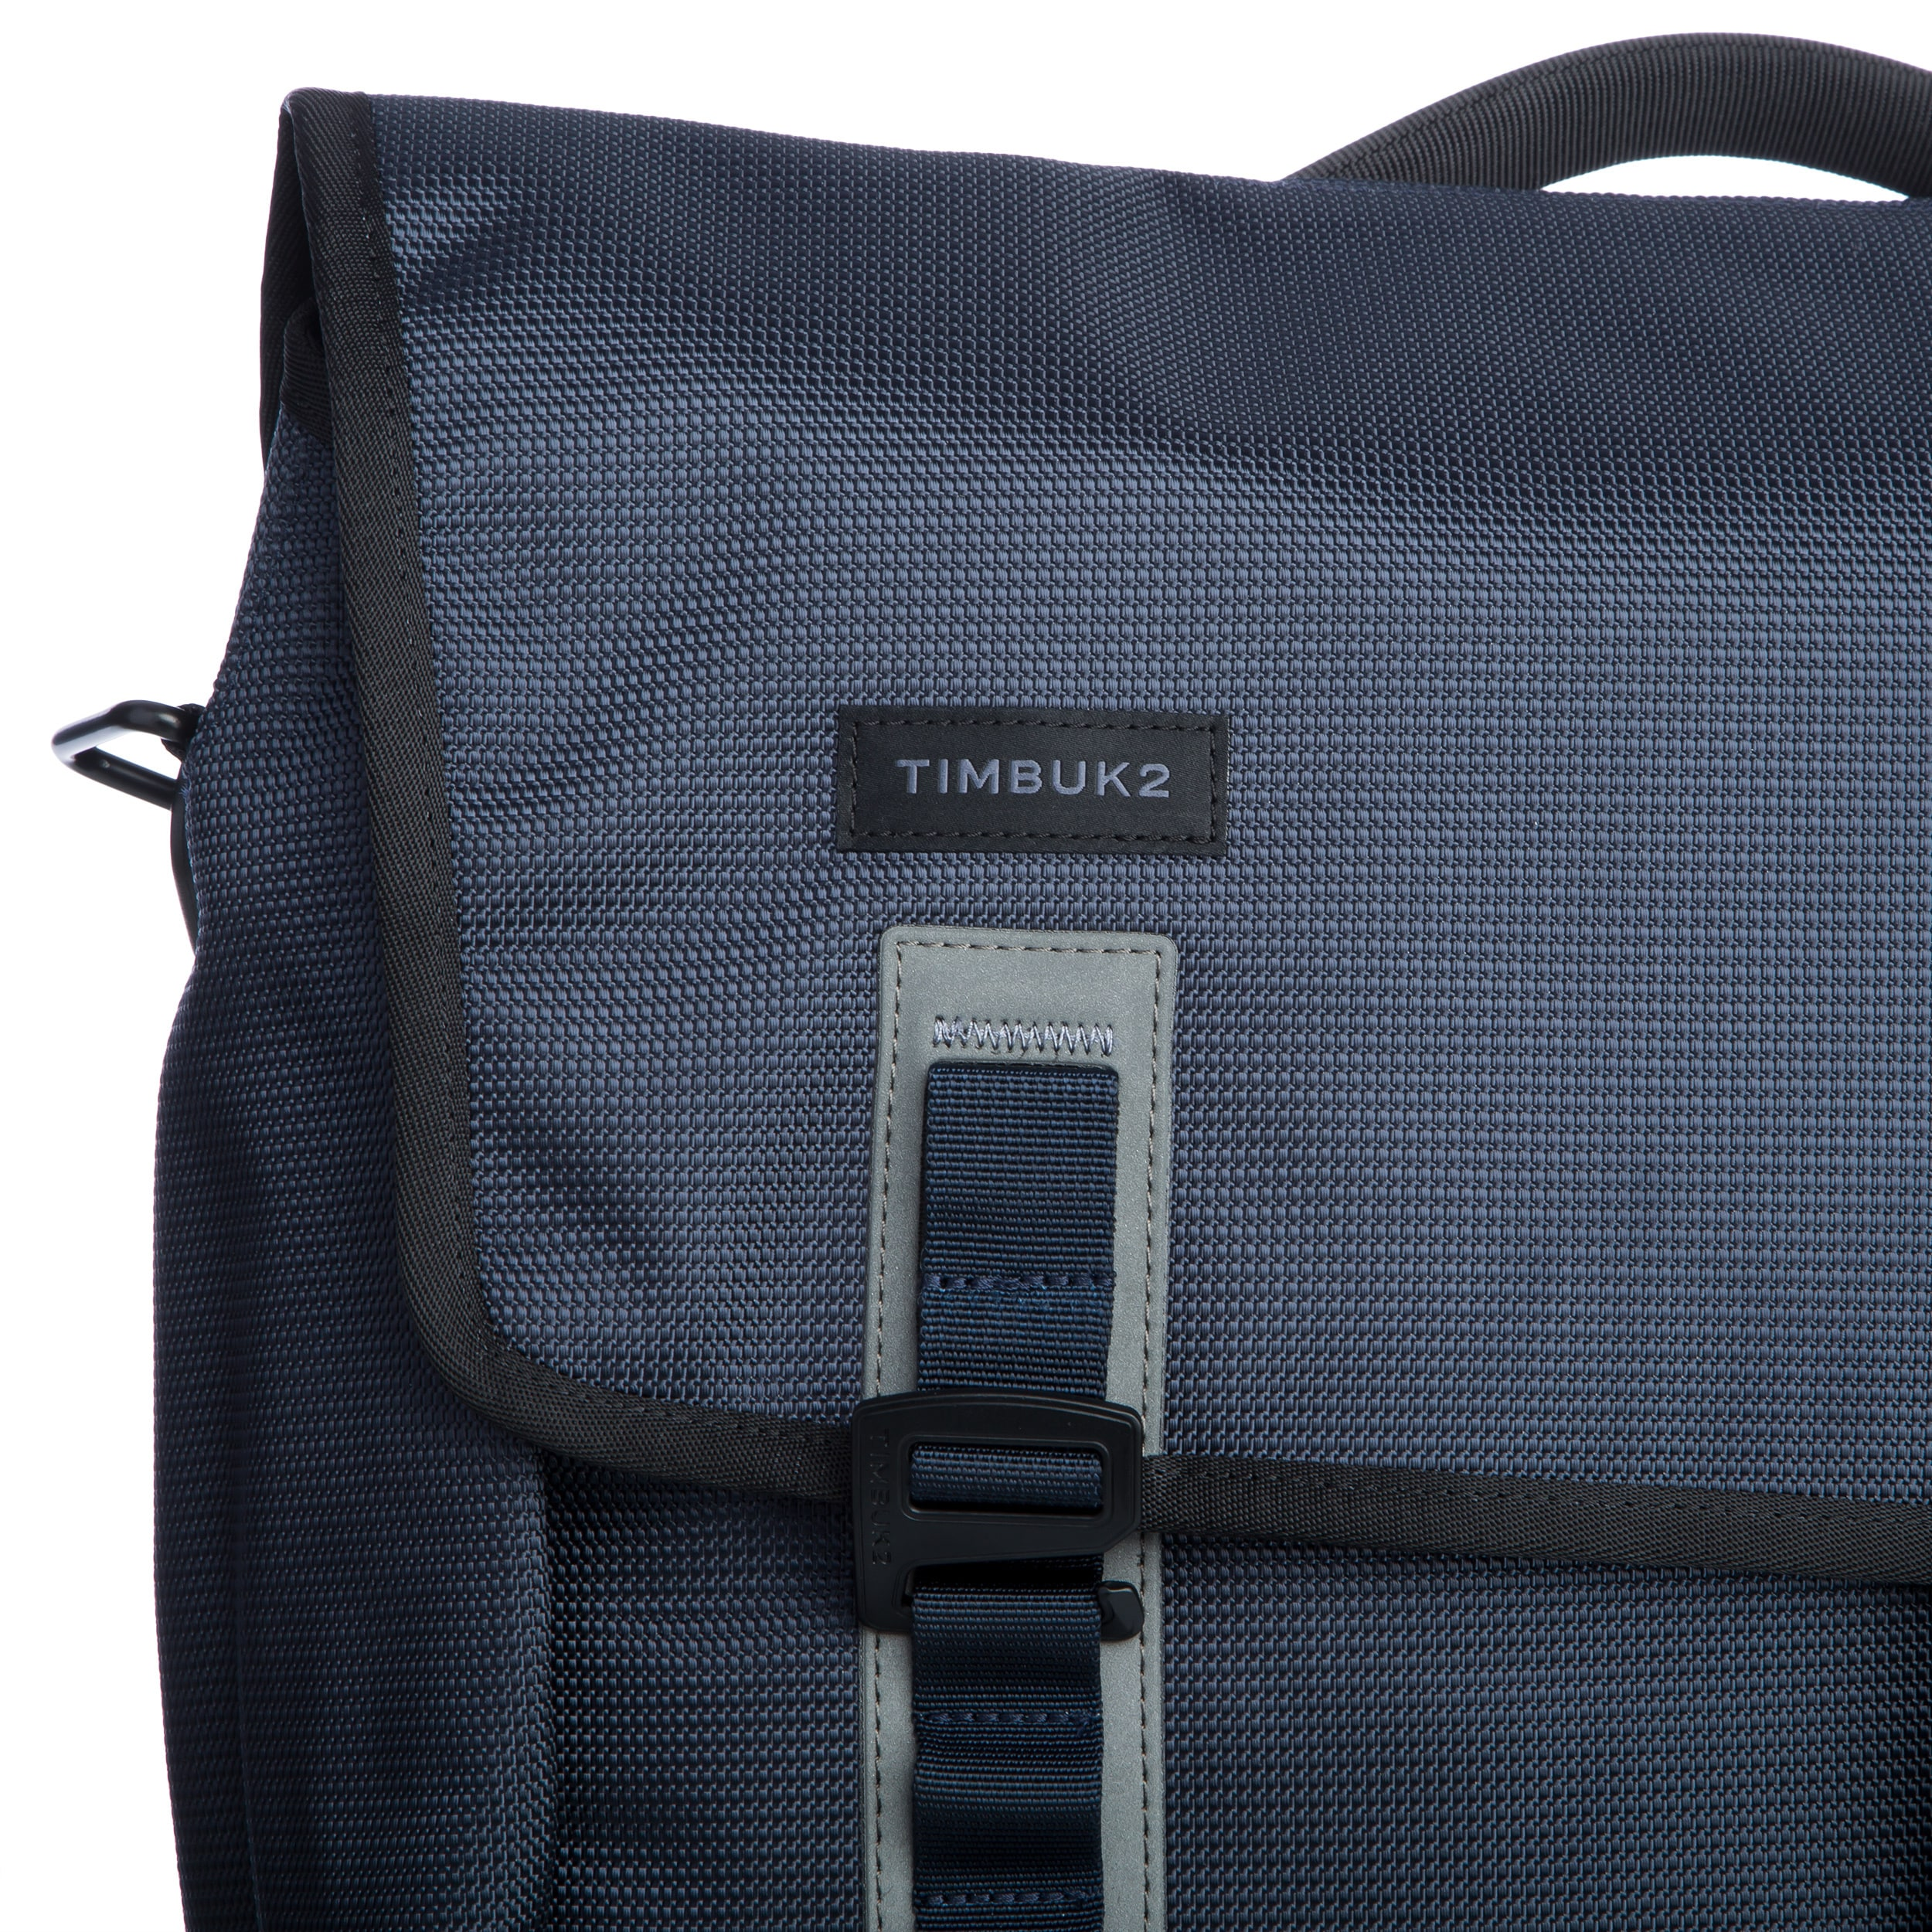 19f065afcc Shop Timbuk2 Small Abyss Command Messenger Bag - Free Shipping Today -  Overstock - 10900166